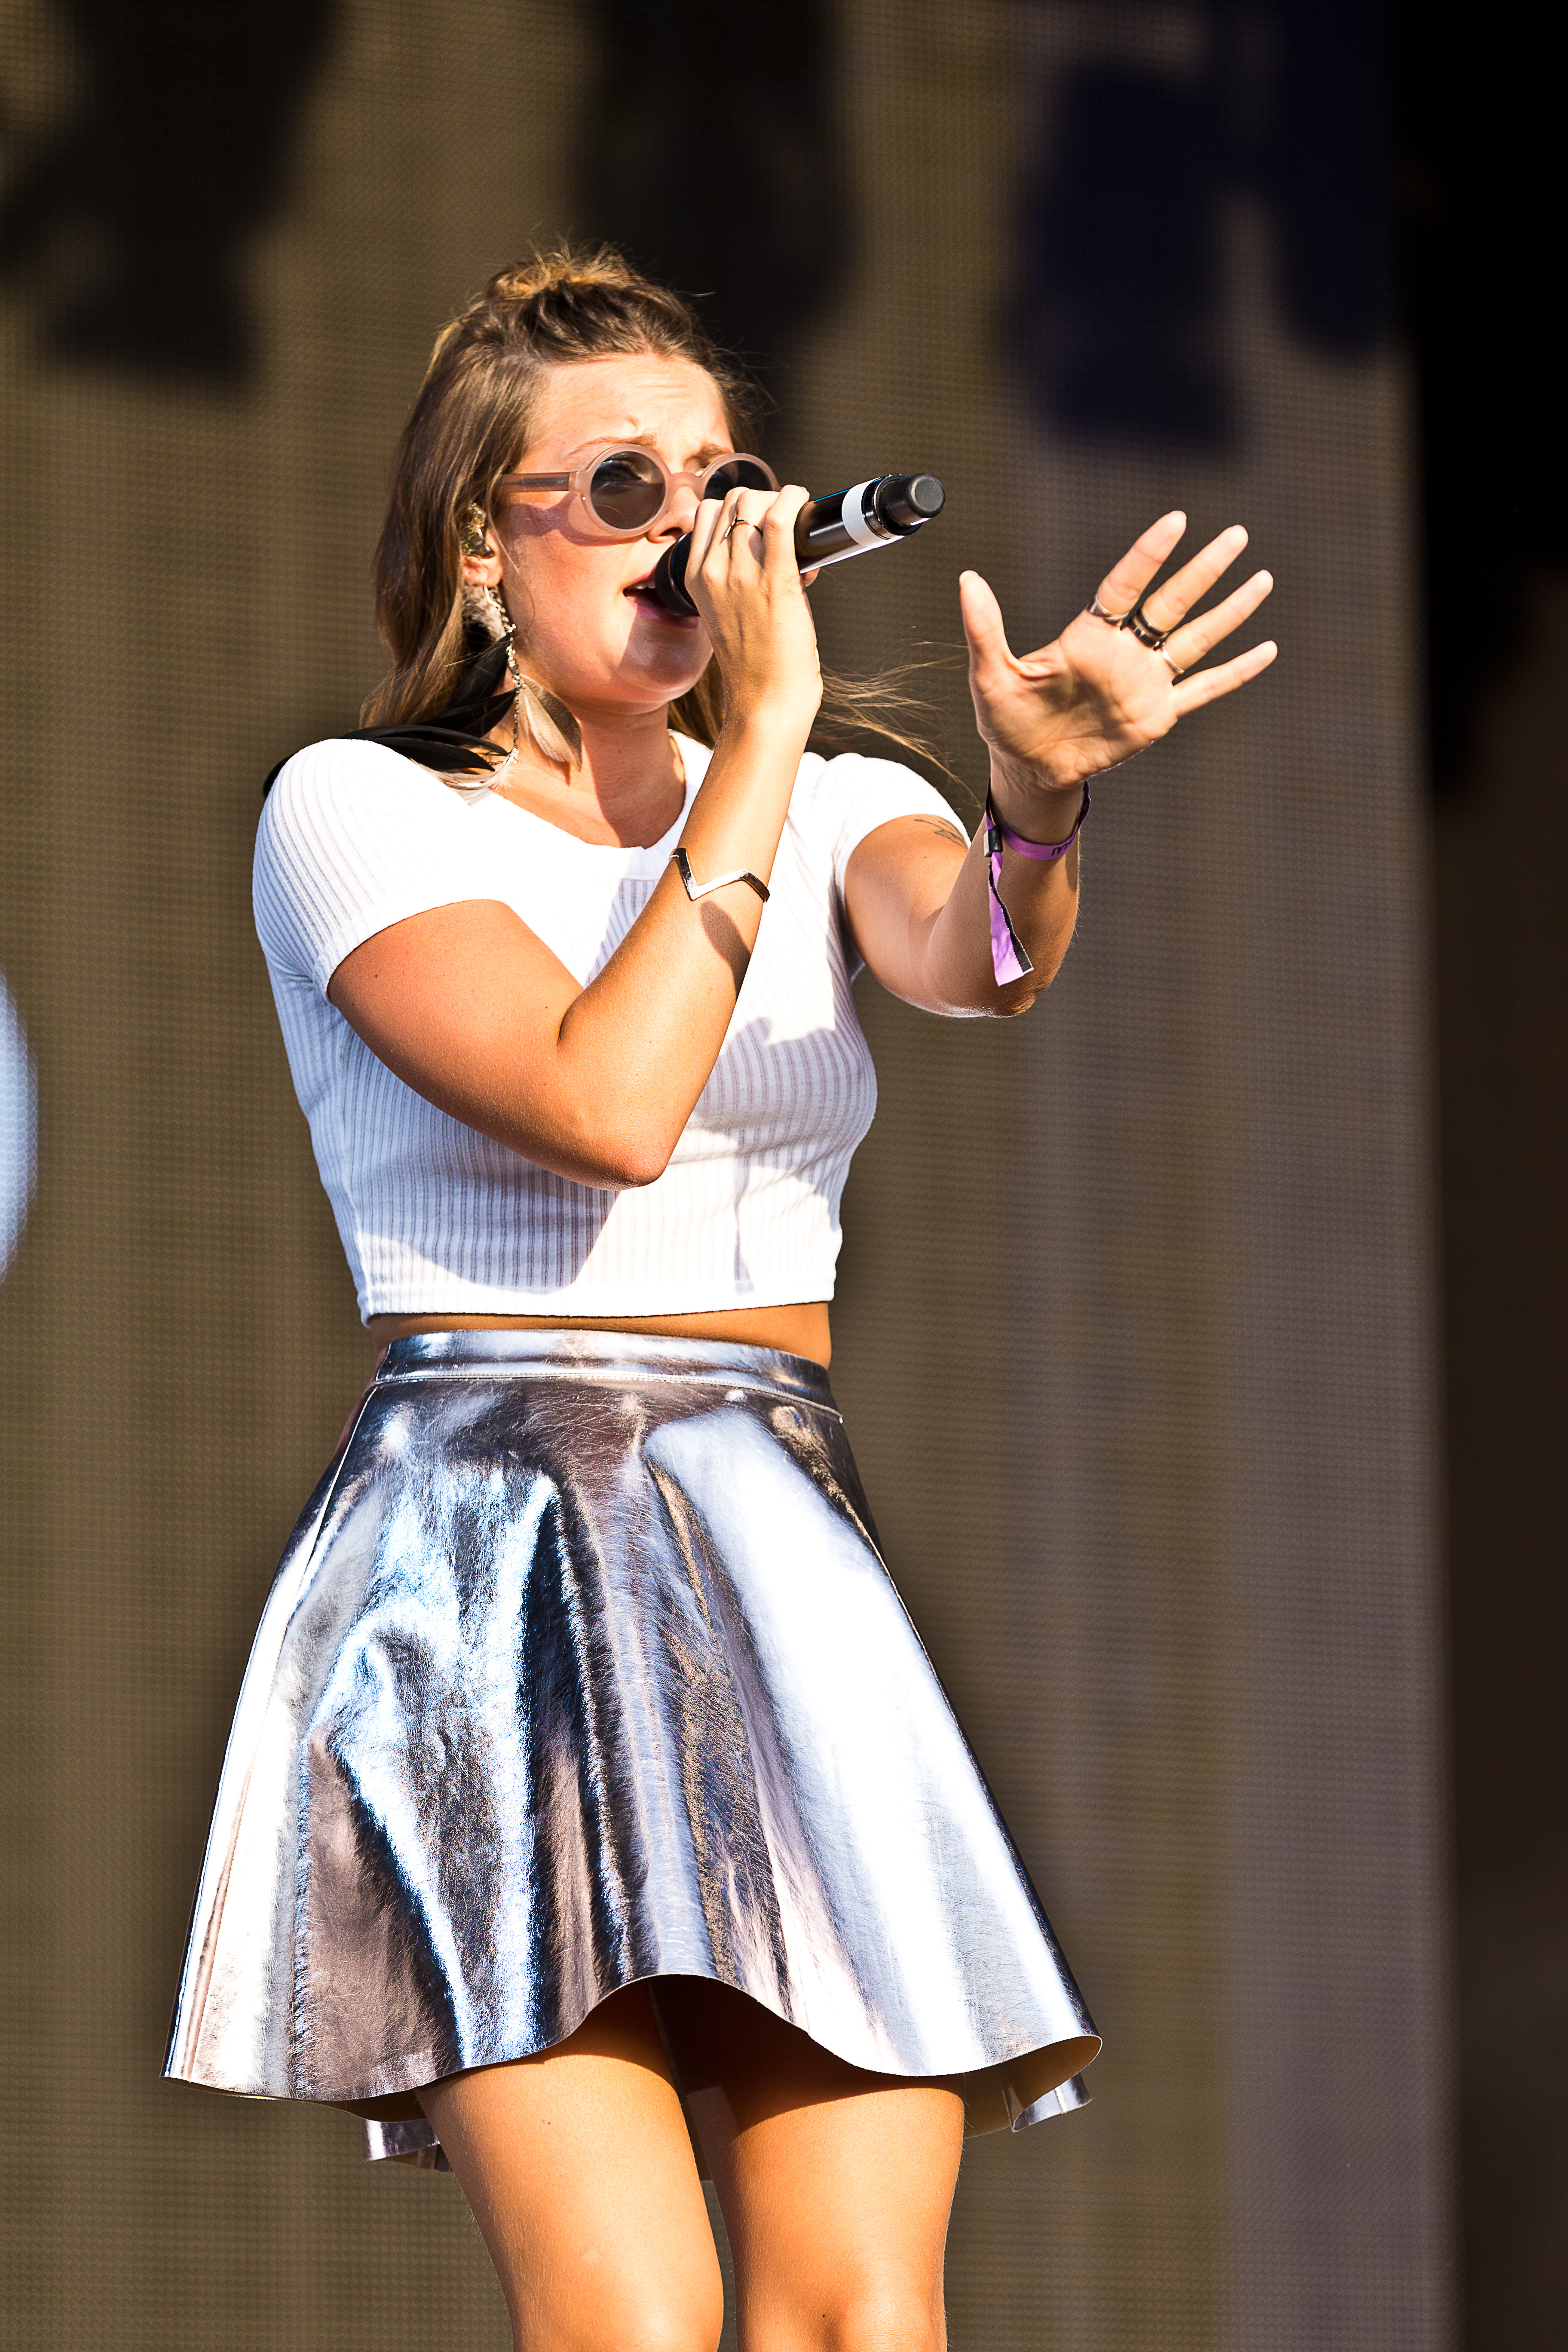 a03db63ee7 List of songs written by Tove Lo - Wikipedia